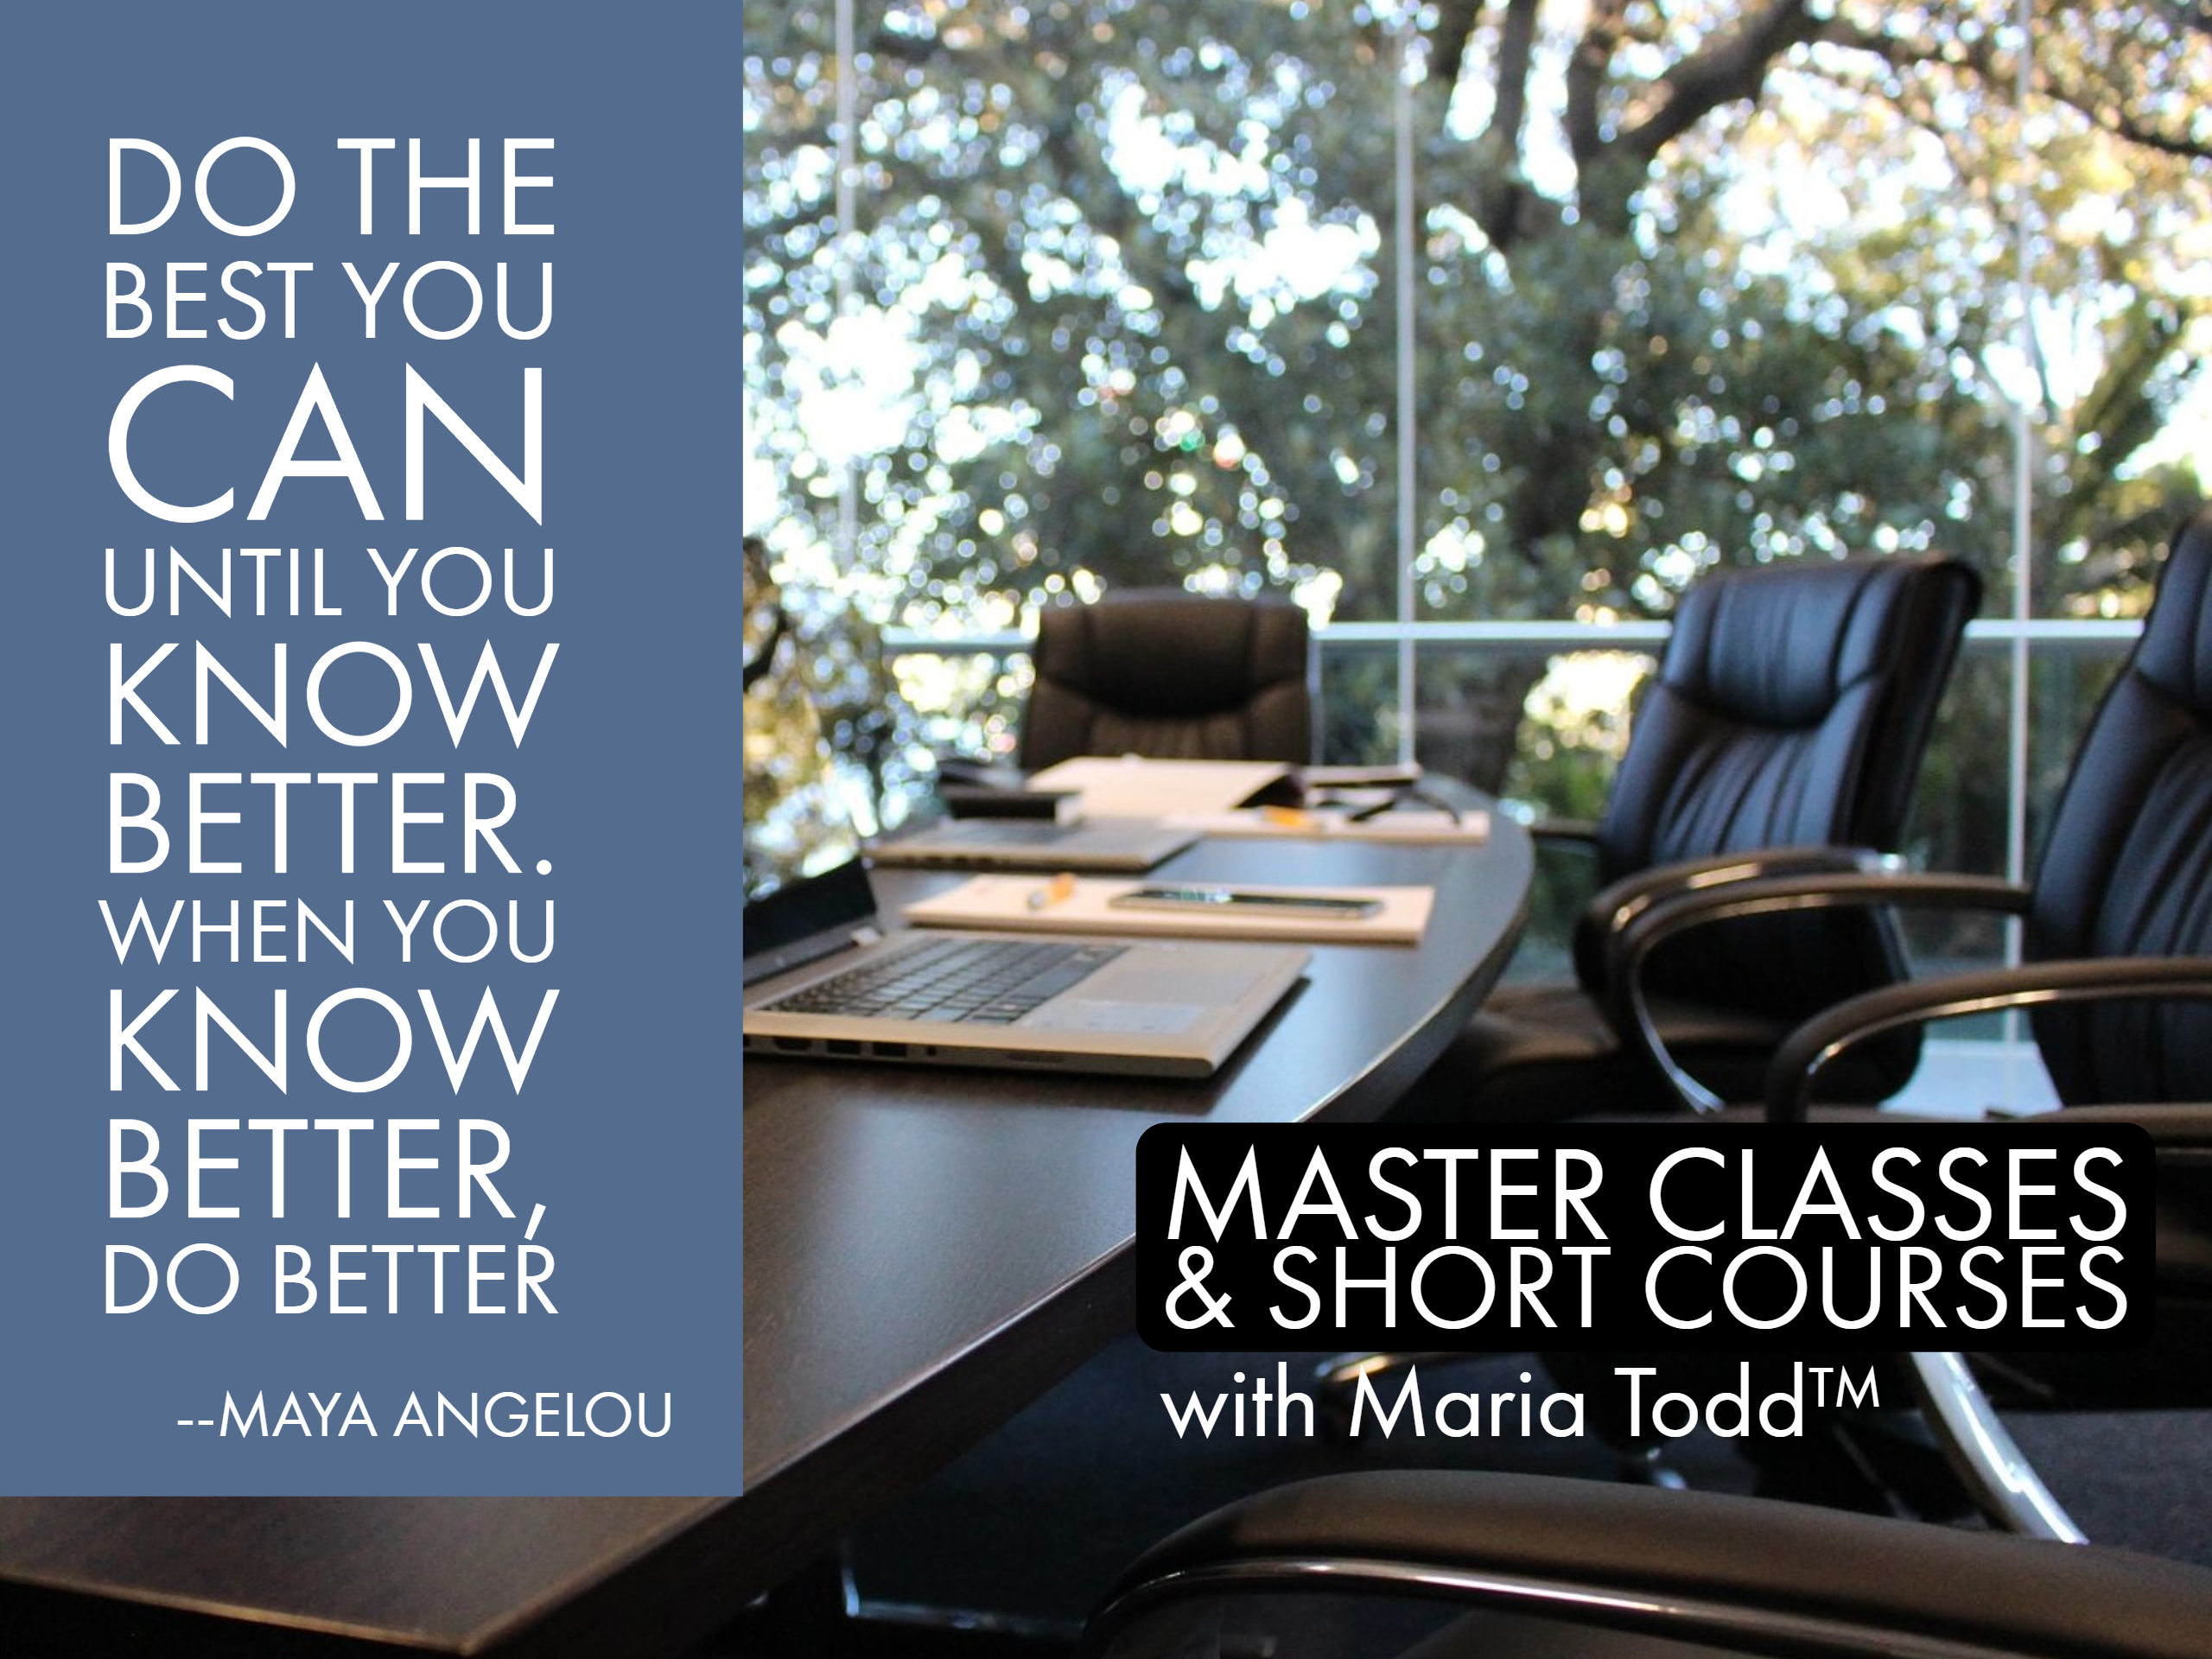 masterclasses and short courses with maria todd on managed care and medical tourism